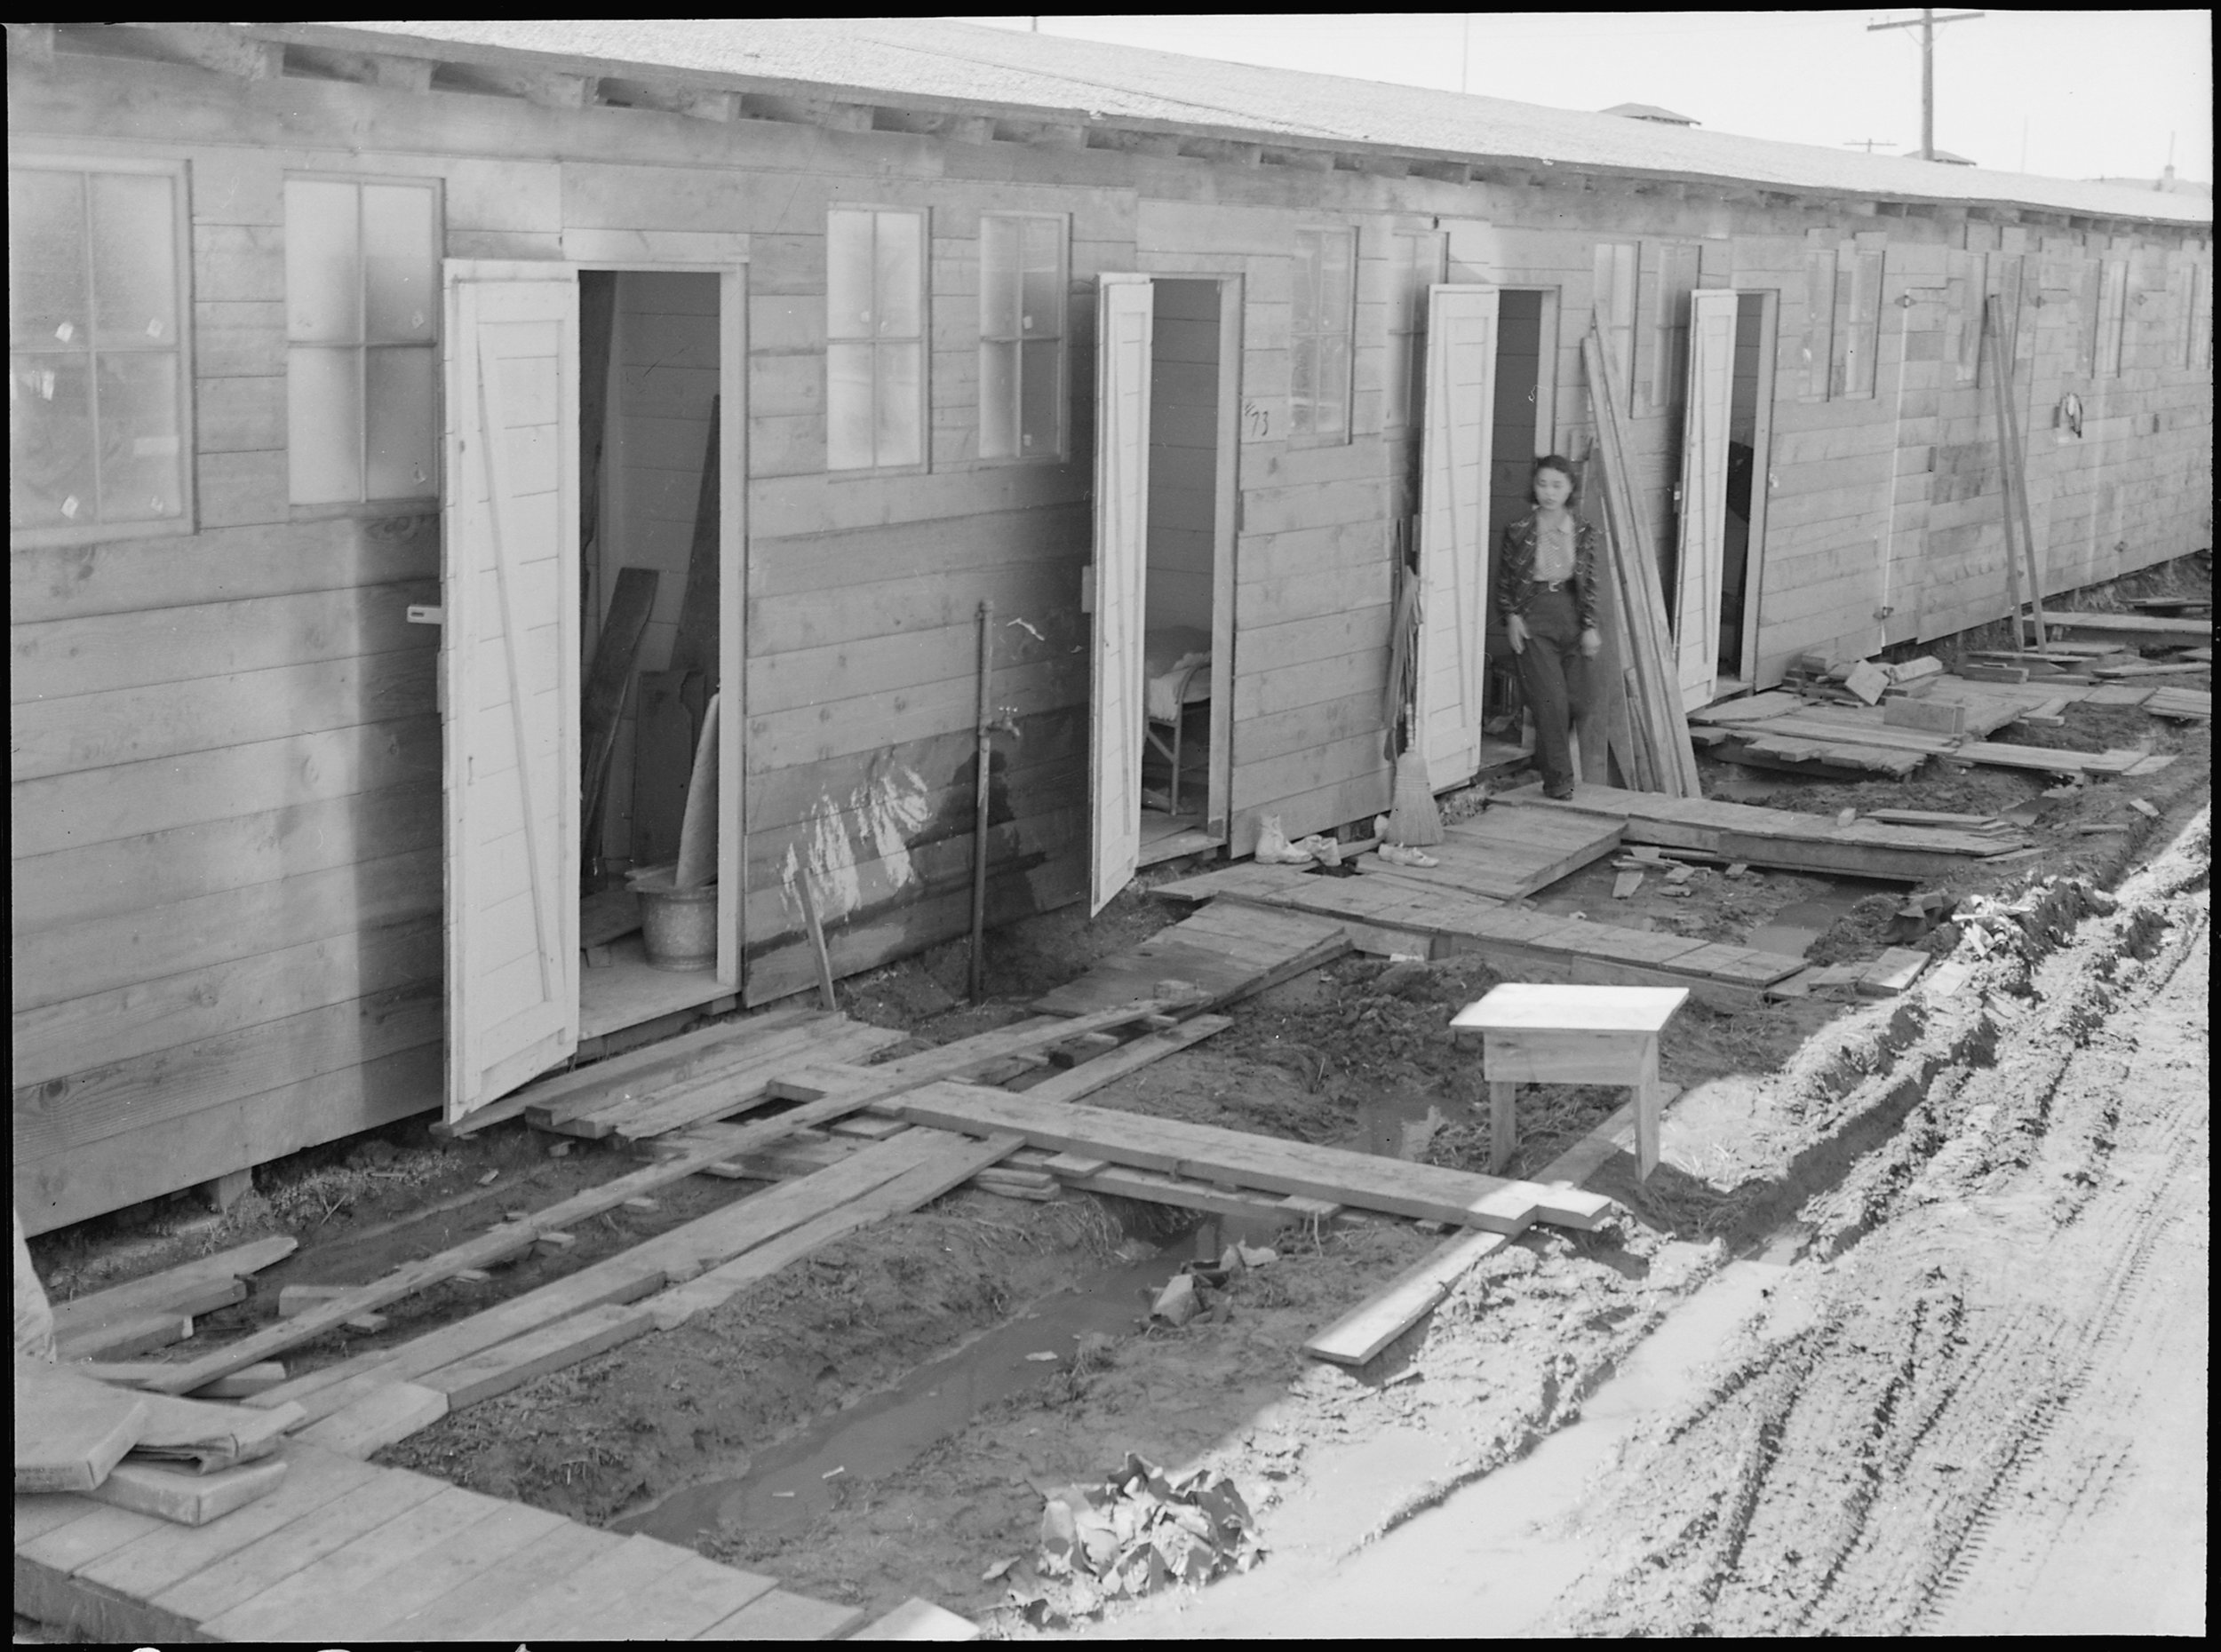 April 29, 1942 — Tanforan Assembly center, San Bruno, California. Barracks for family living quarters. Each door enters into a family unit of two small rooms. Tanforan assembly center was opened two days before the photograph was made. On the first day there had been a heavy rain. When a family has arrived here, first step of evacuation is complete.